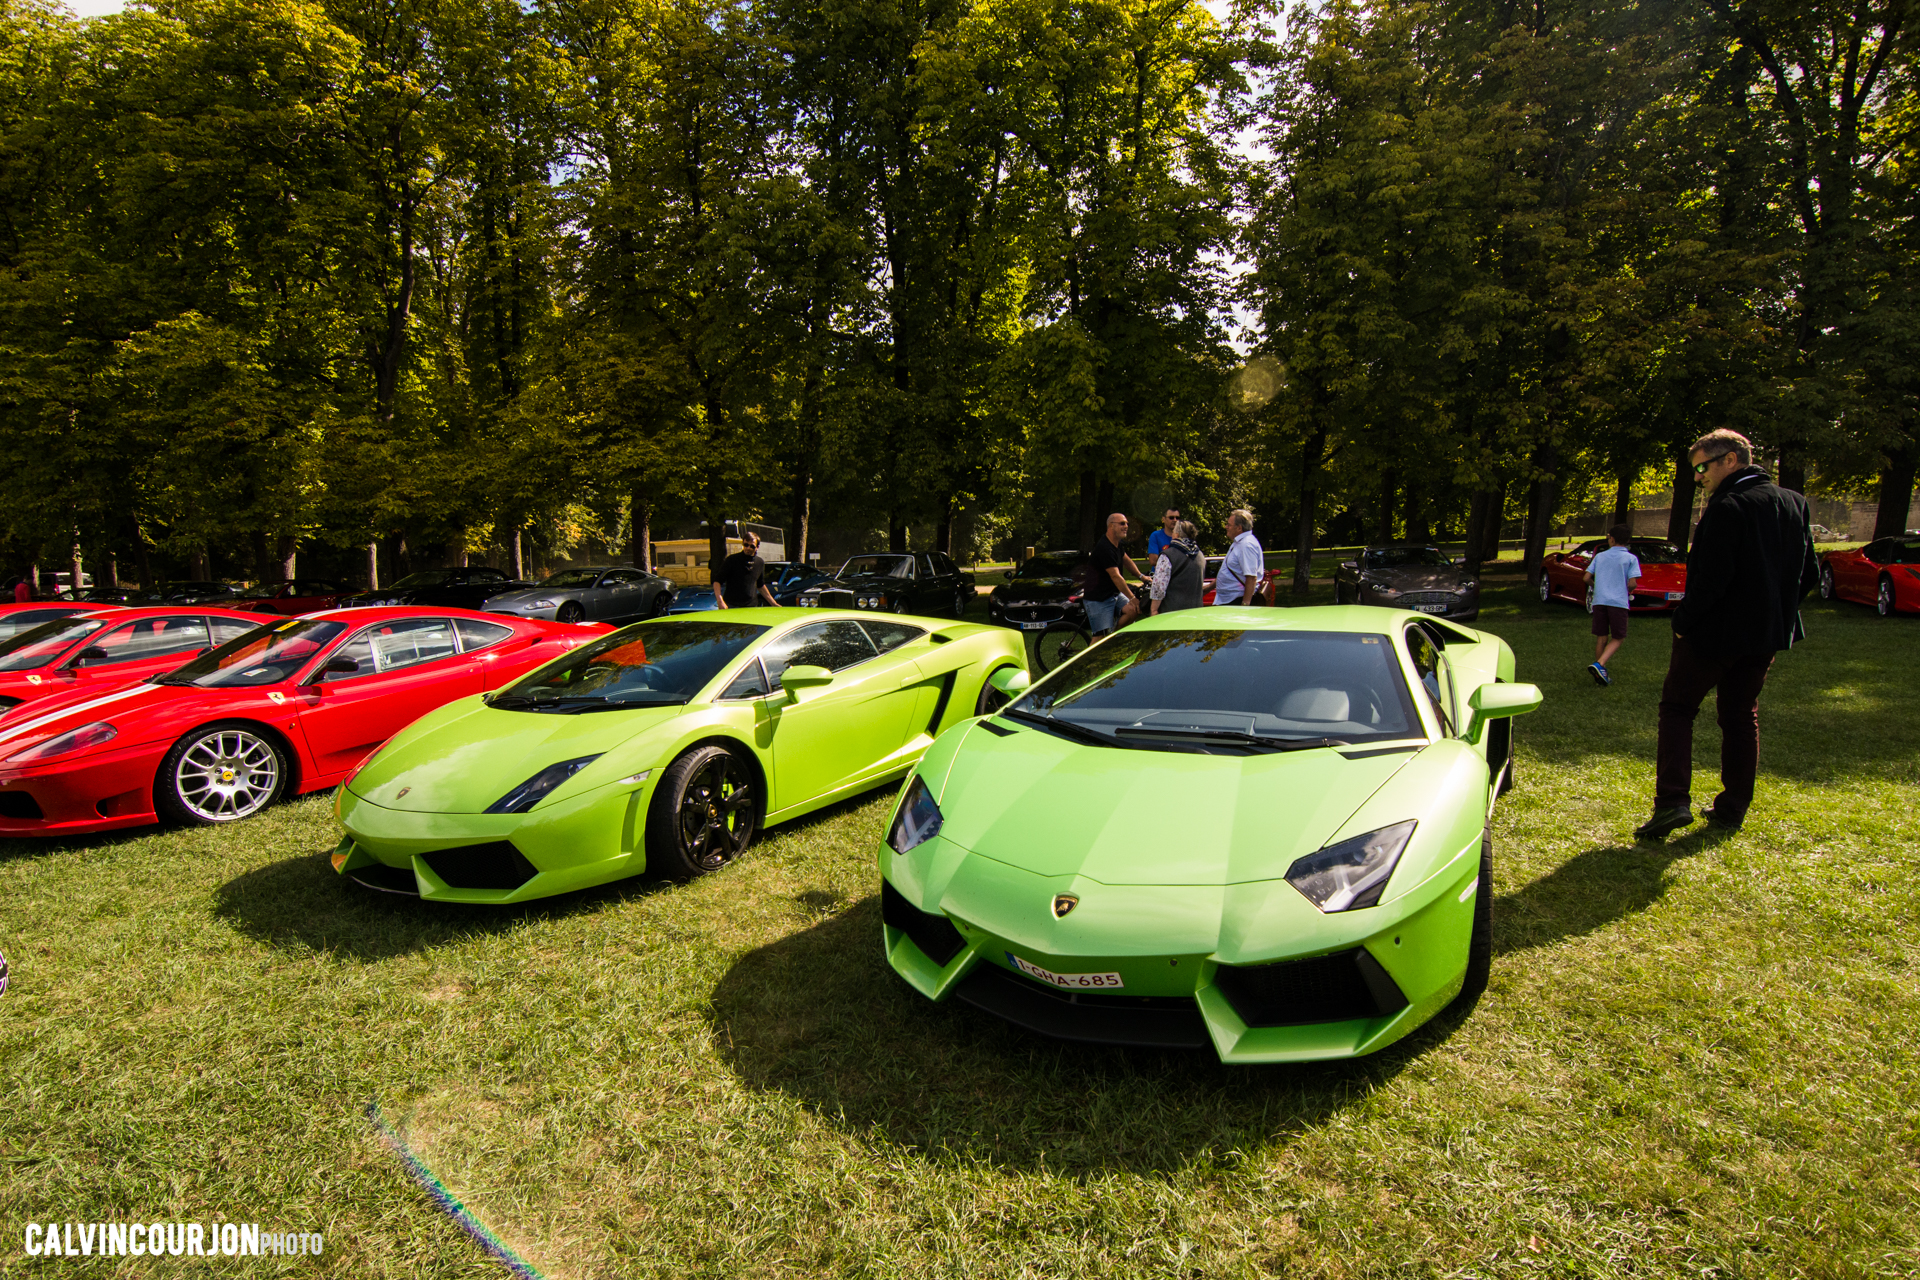 parking Lamborghini - Chantilly 2015 – photo Calvin Courjon